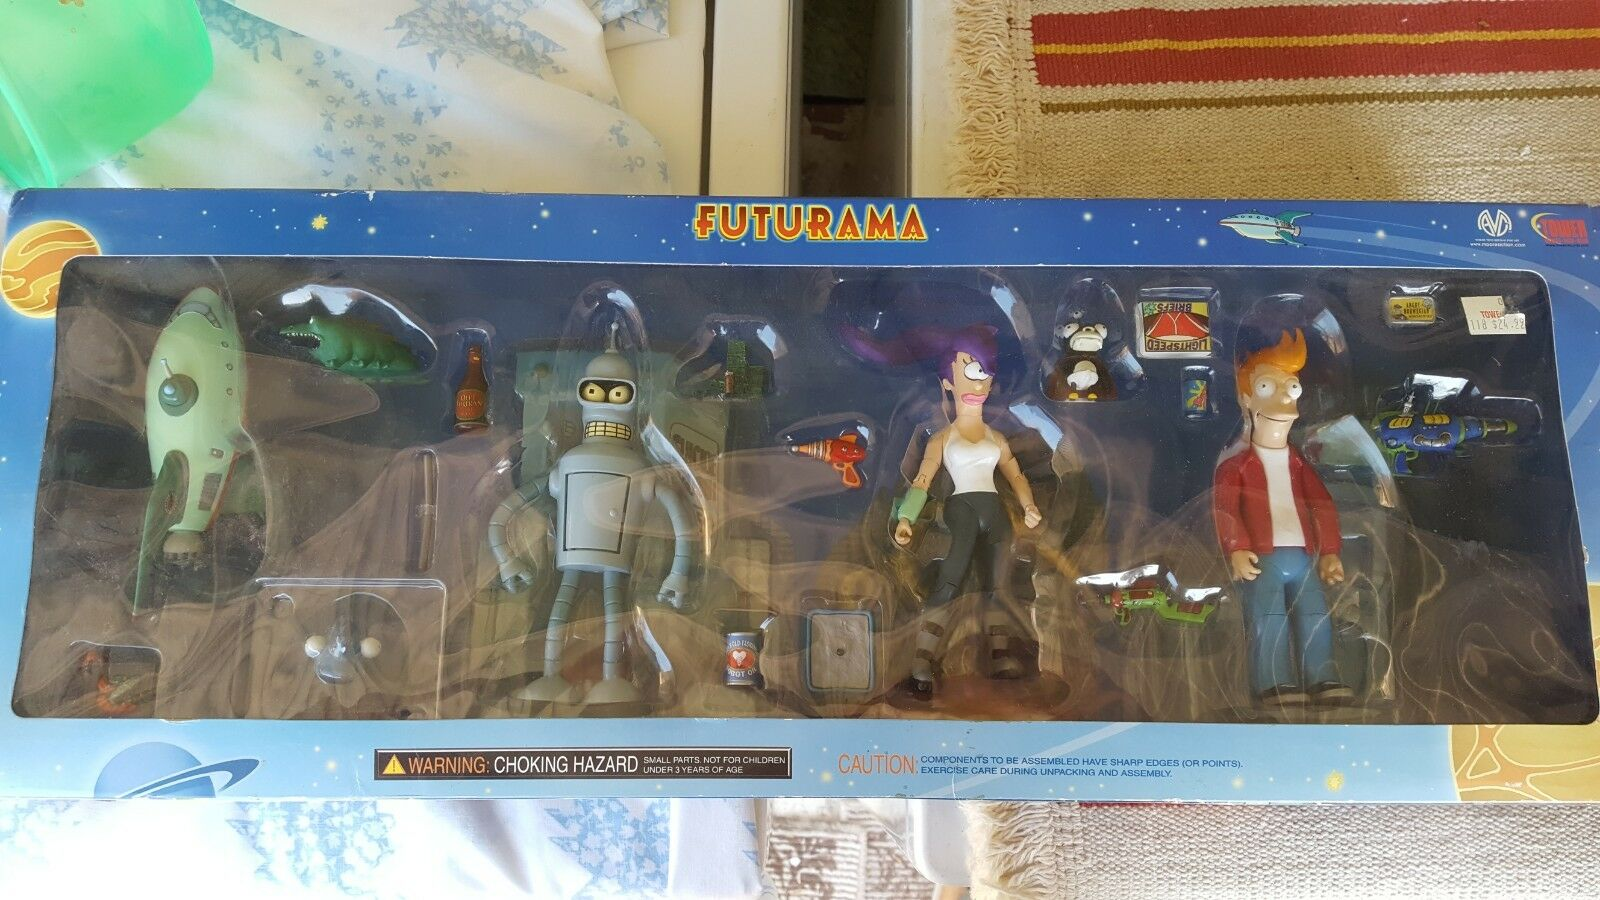 2001 Futurama Collect O Pak Planet Express for Tower Records